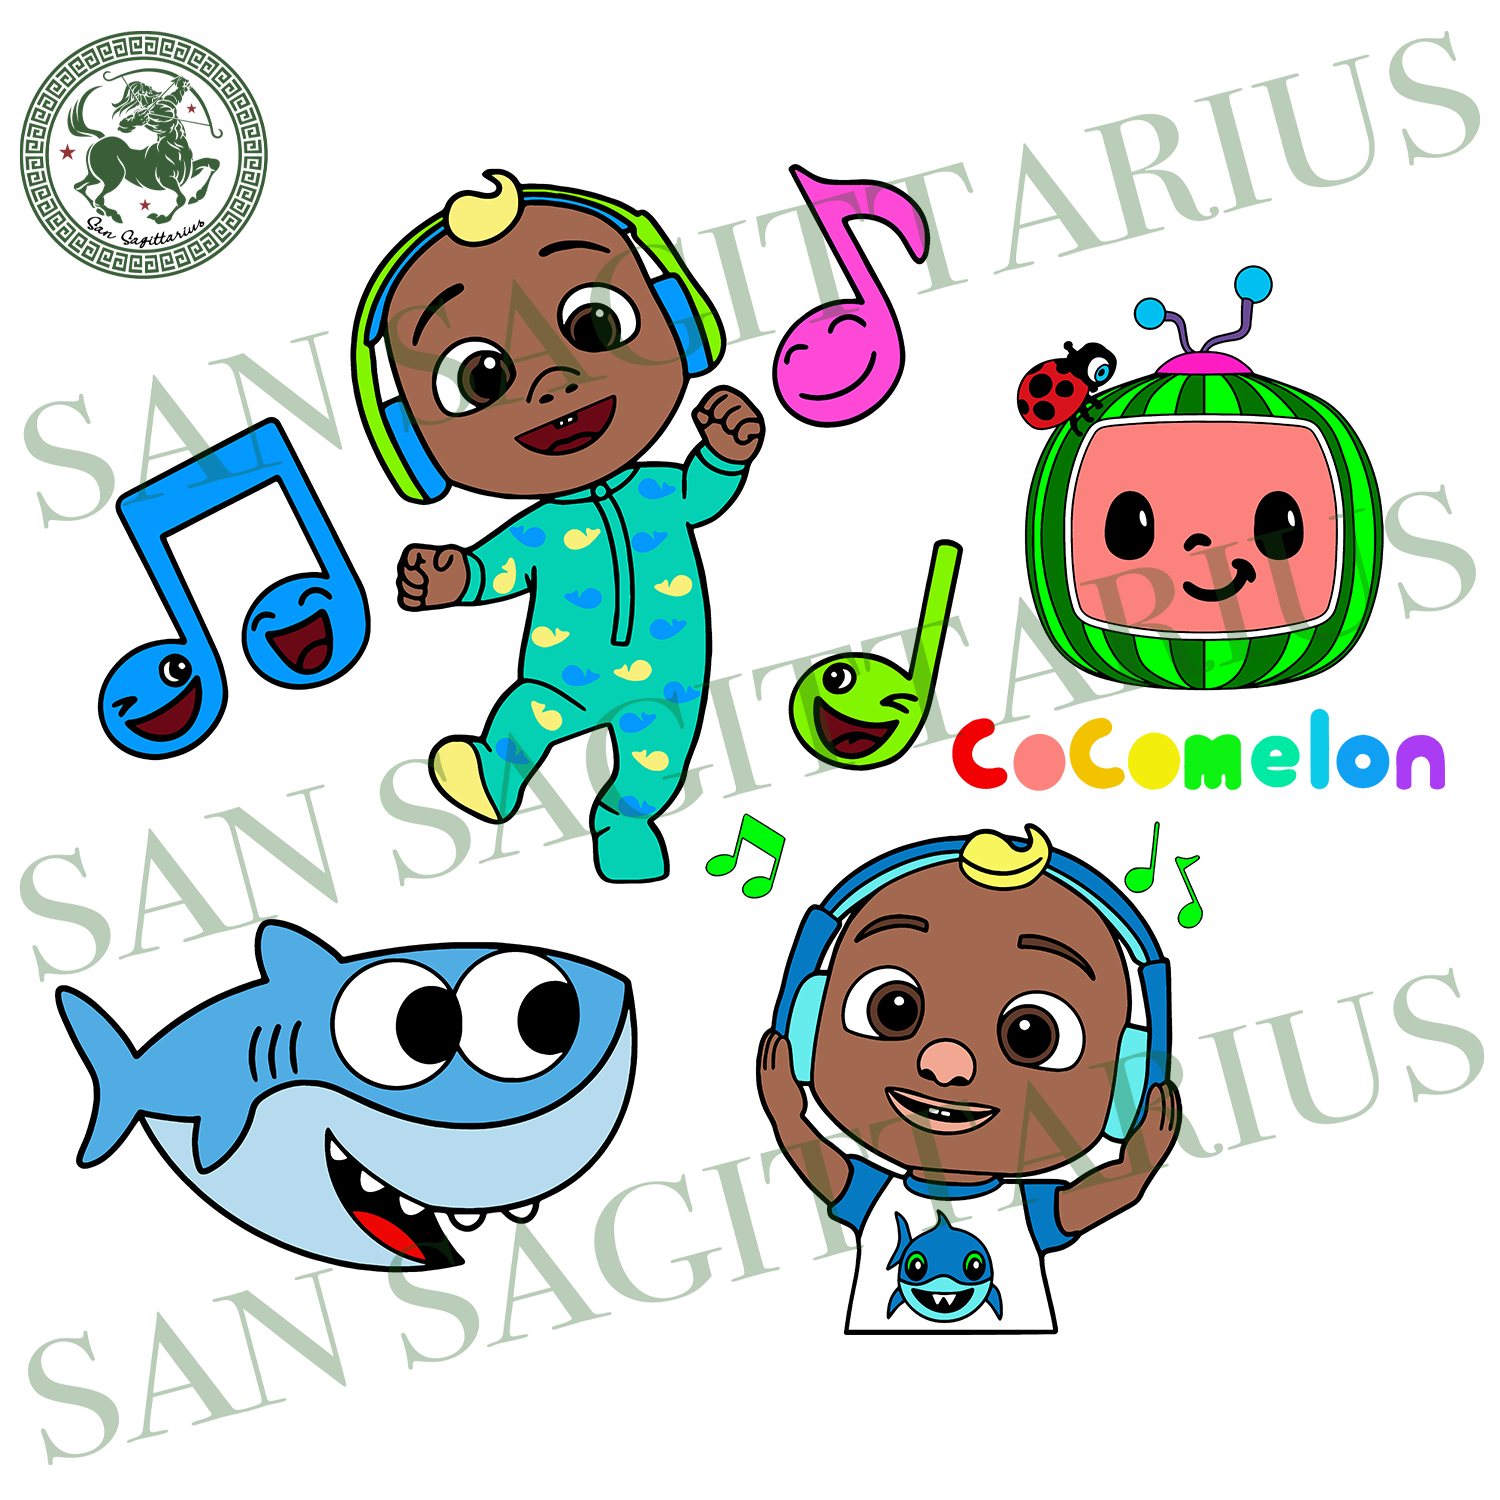 Cocomelon Movie Bundle, Trending Svg, Trending, Trending Now, Cocomelon Svg, Cocomelon Shirts, Africa Baby, Cocomelon Movie, Shark Svg, Cocomelon Brother, Cocomelon Mother, Movie, Movie Lover